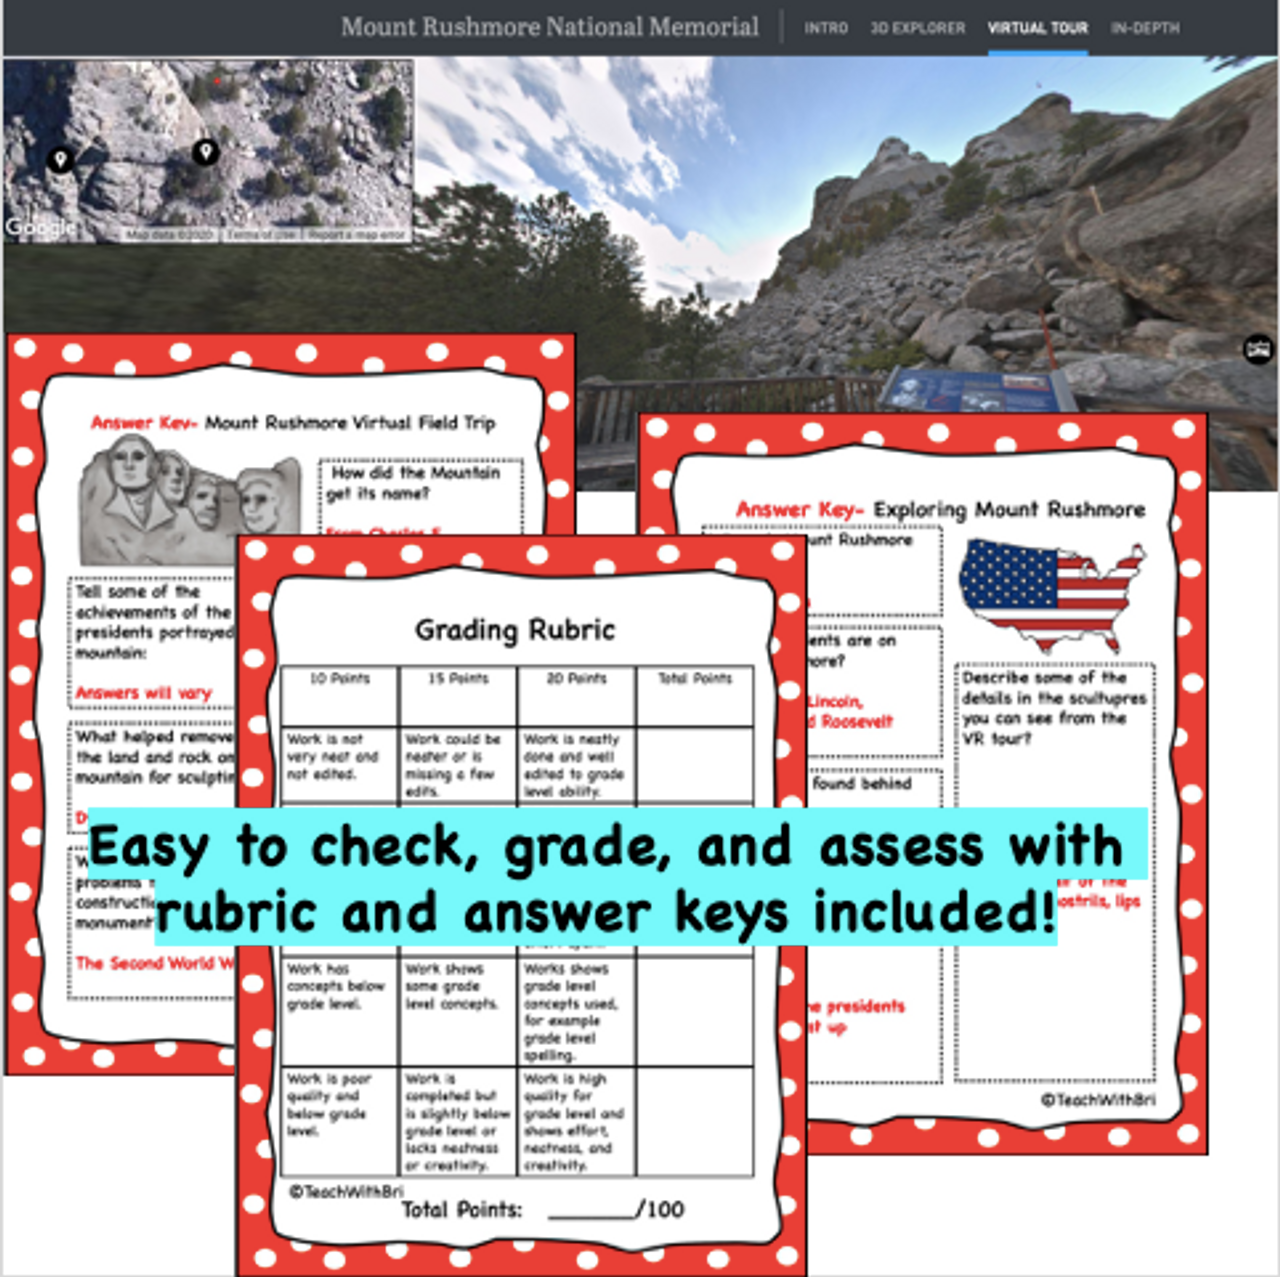 Mount Rushmore Virtual Field Trip - Student Activities